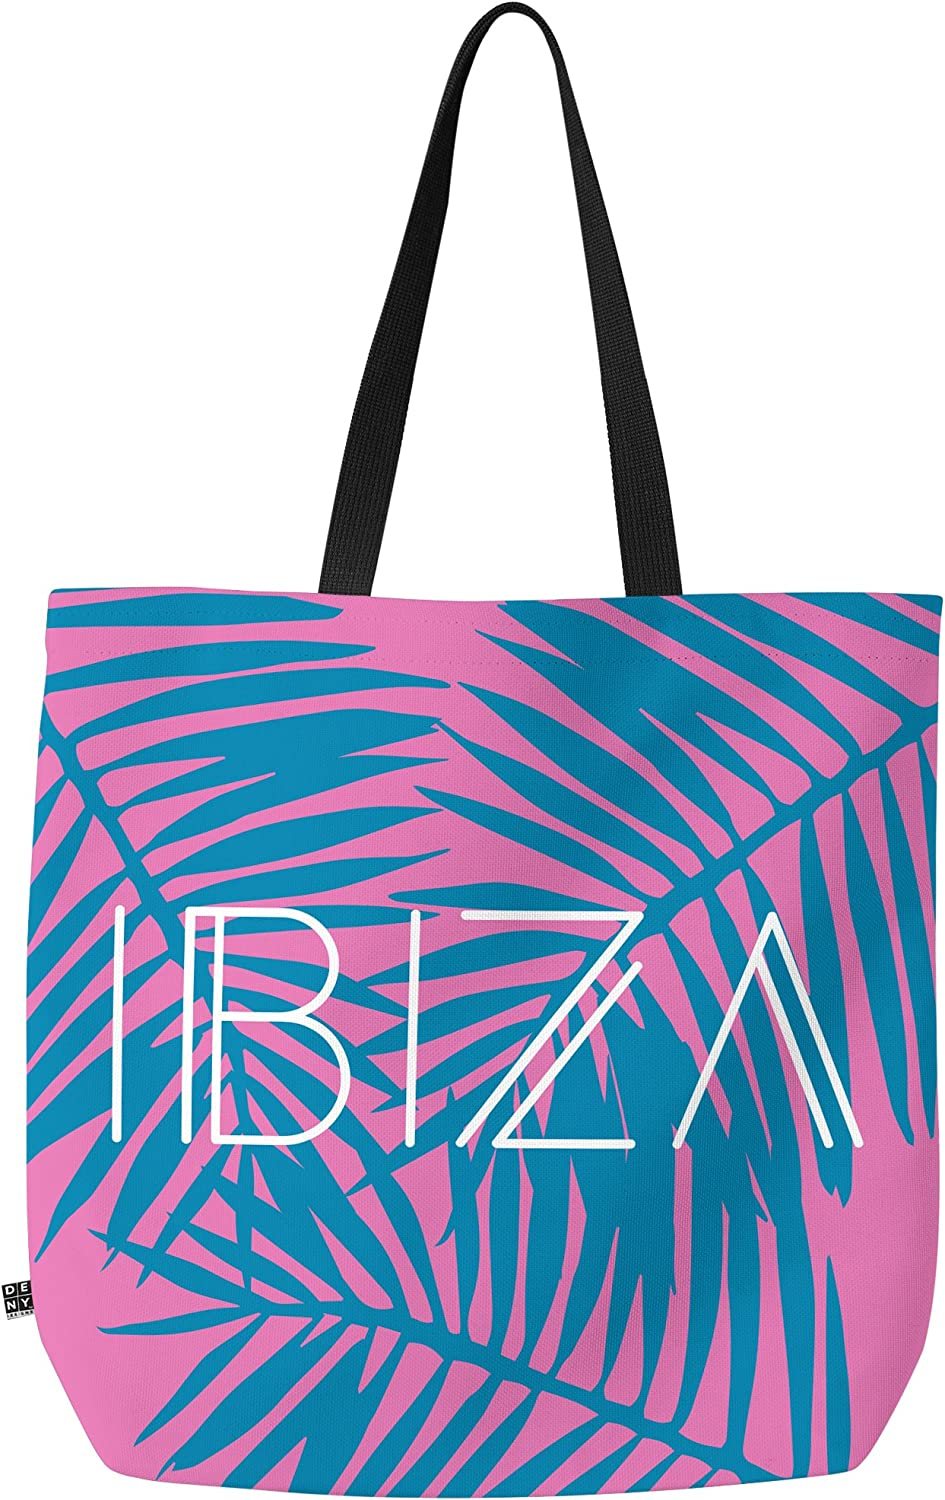 Deny Designs Ibiza Carry All Tote Bag, 18  x 16